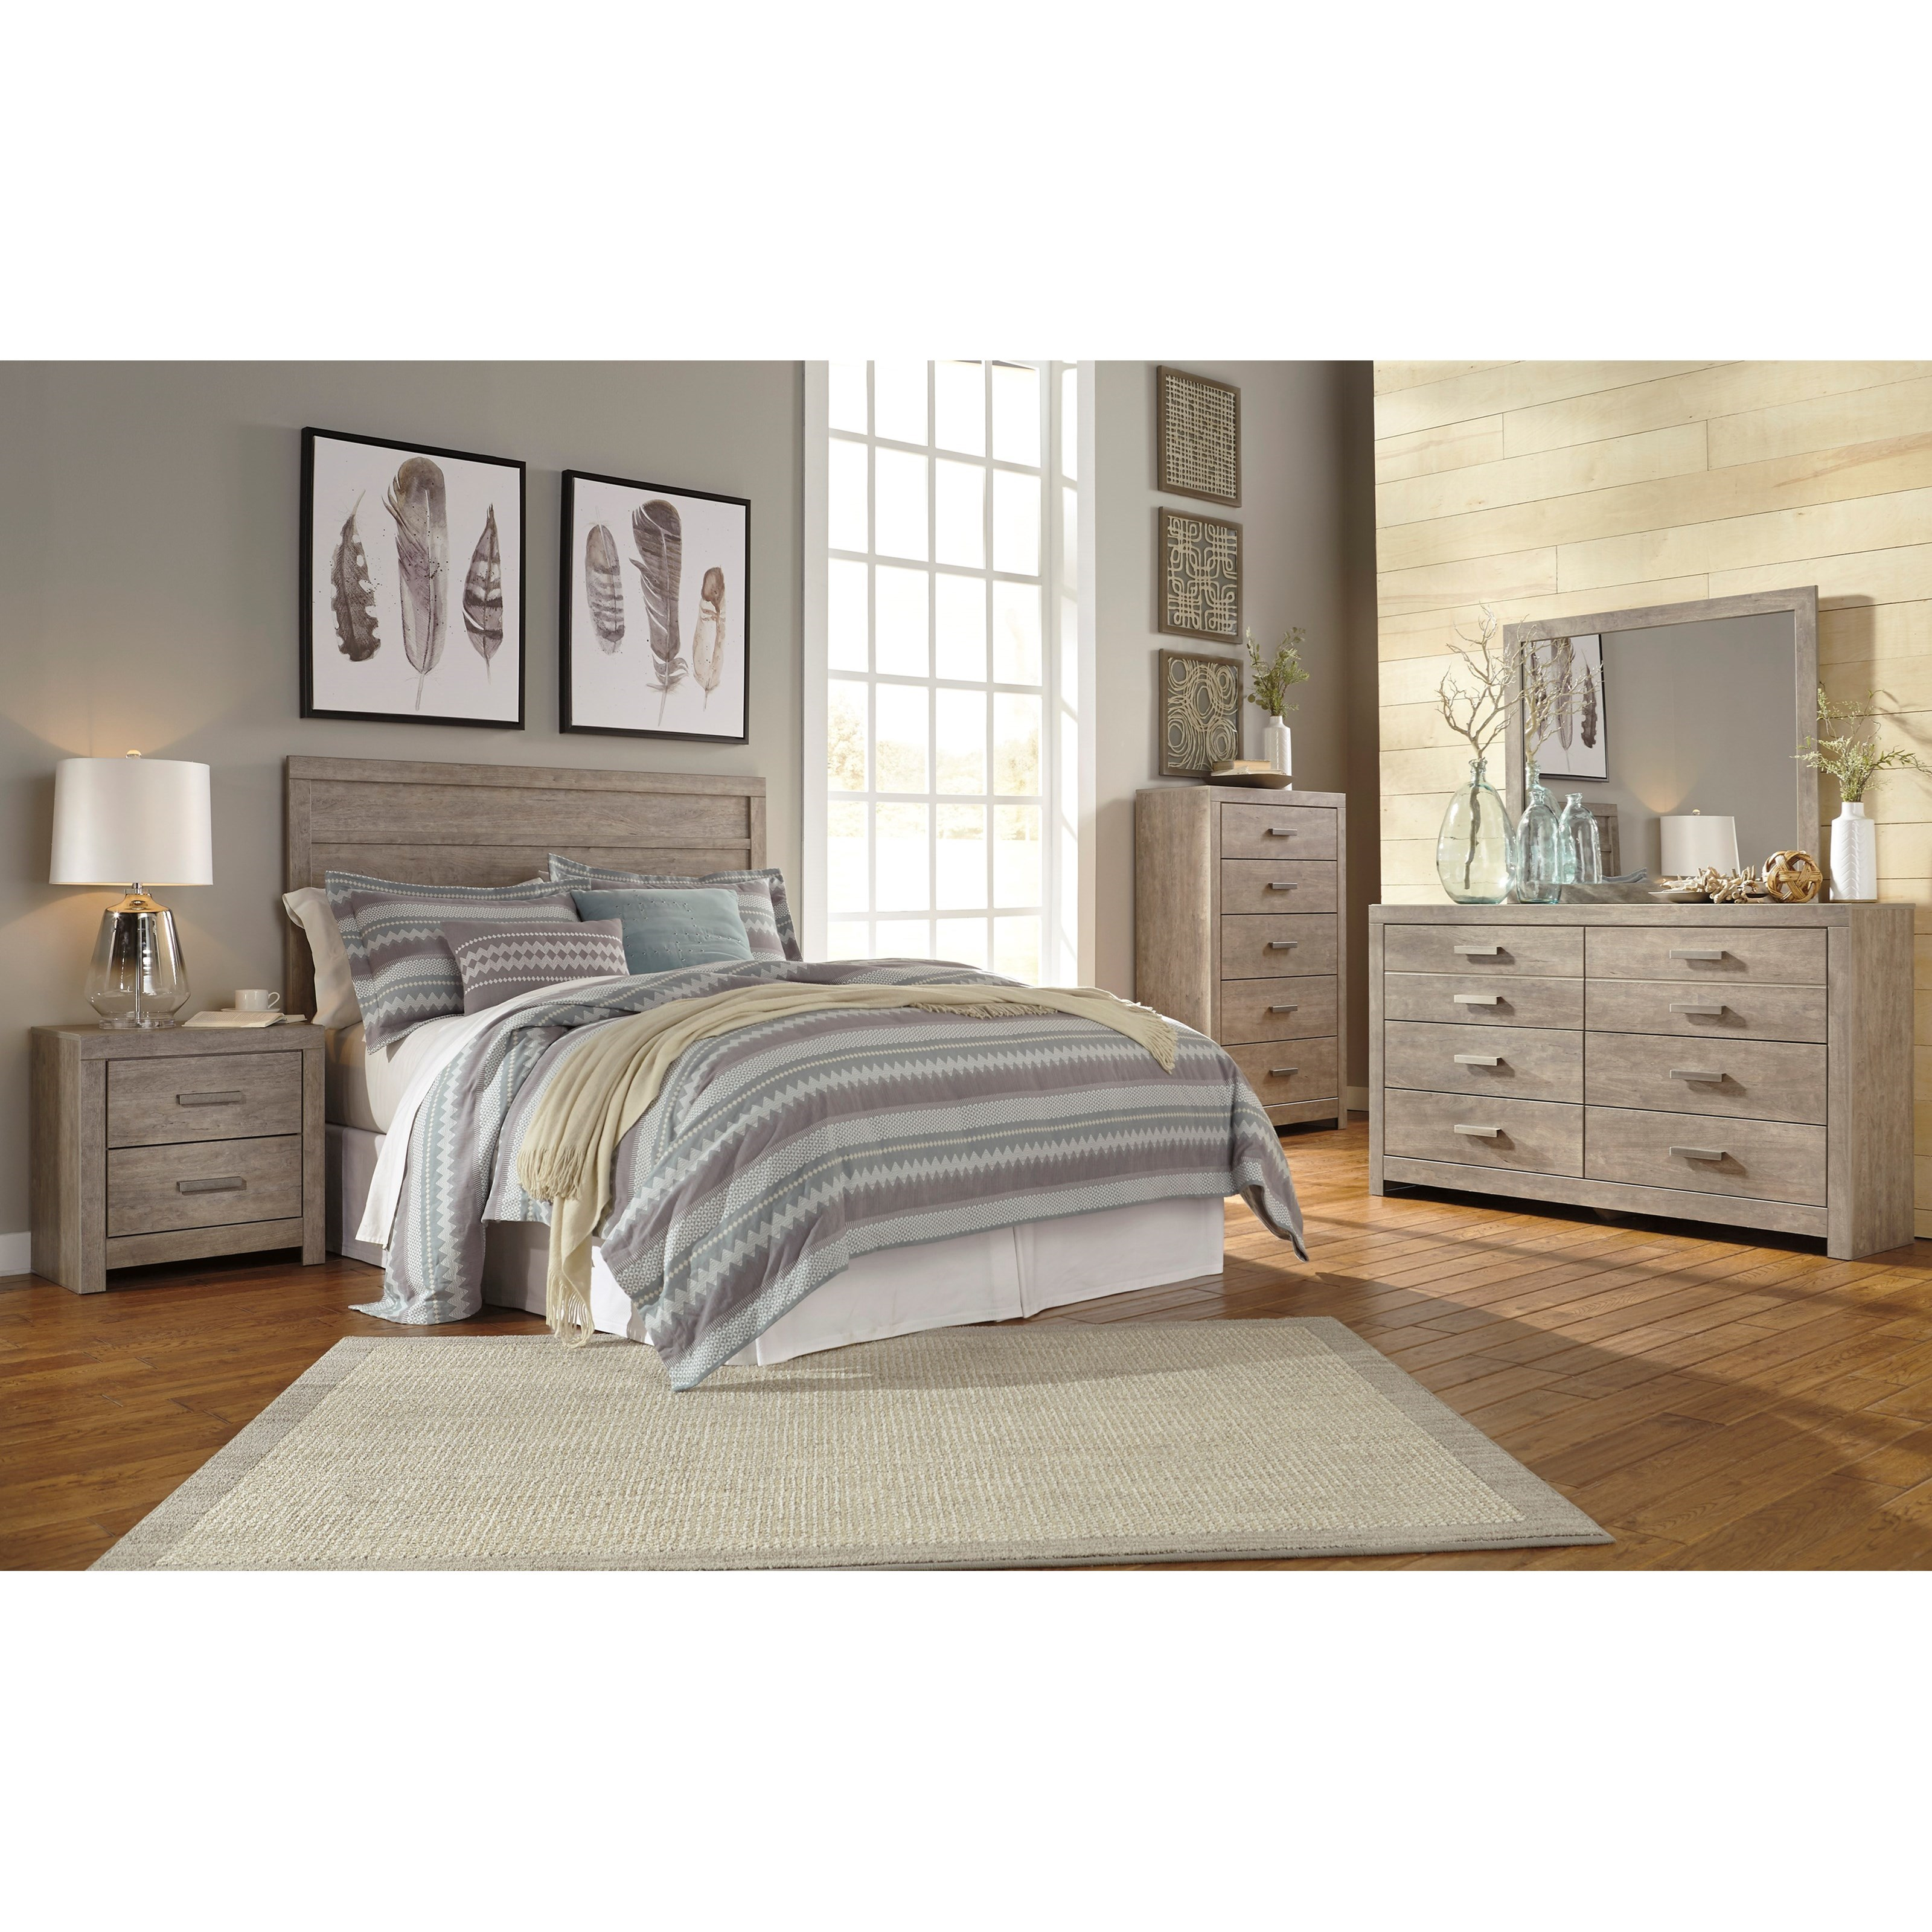 Culverbach Queen/Full Bedroom Group by Signature Design by Ashley at Home Furnishings Direct